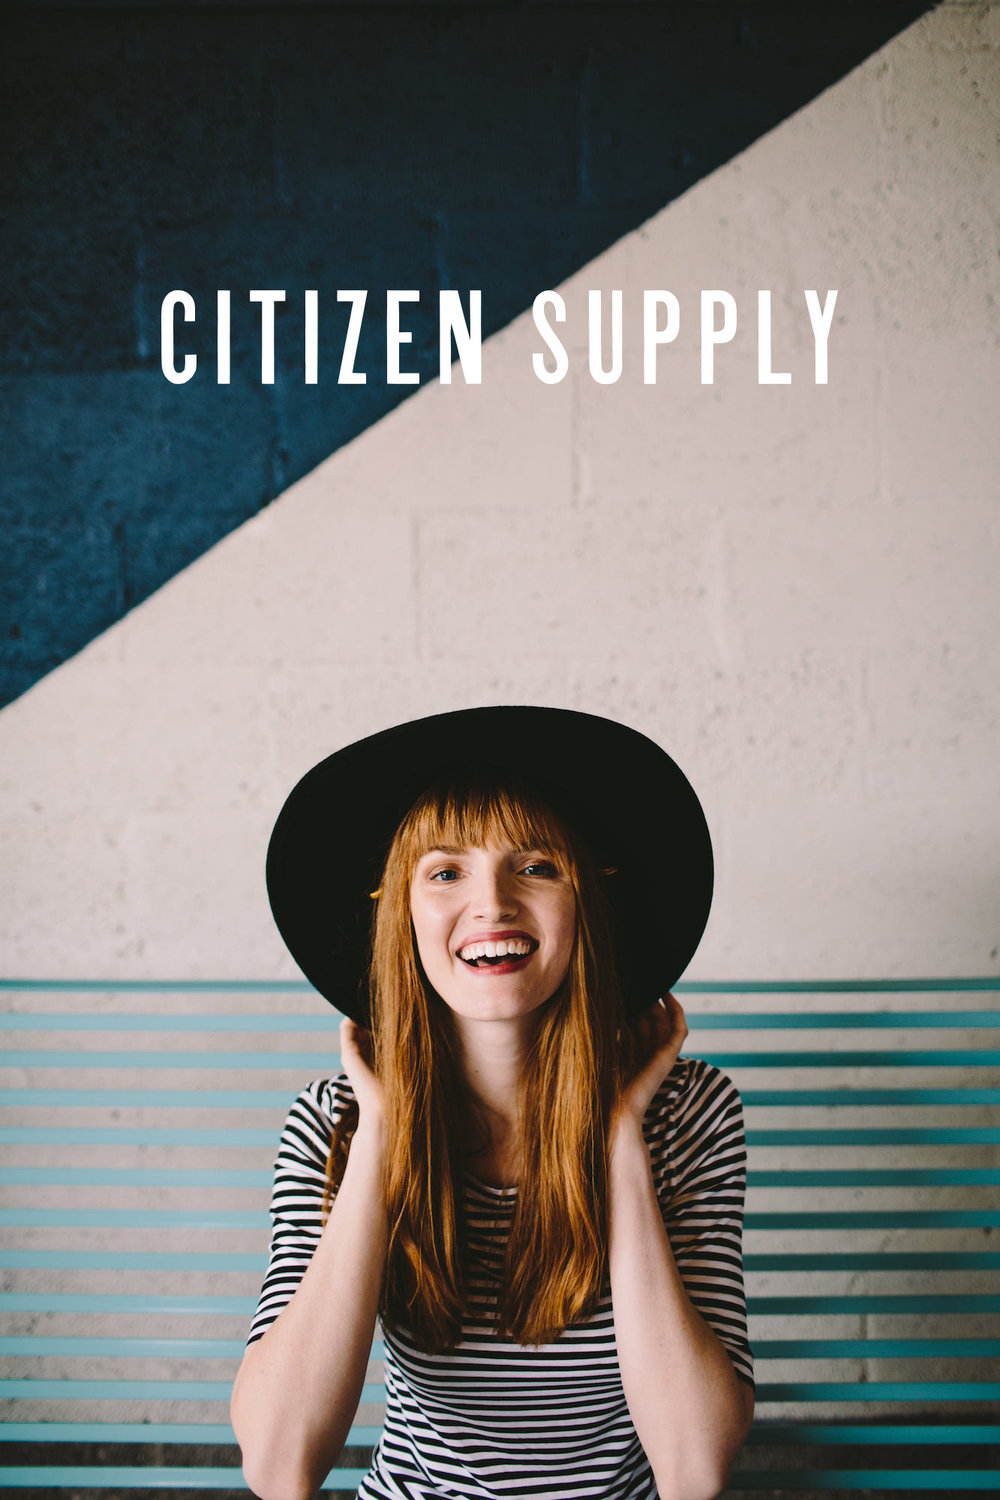 Custom logo design for Citizen Supply retail store brand identity overlays a photograph for the brand.